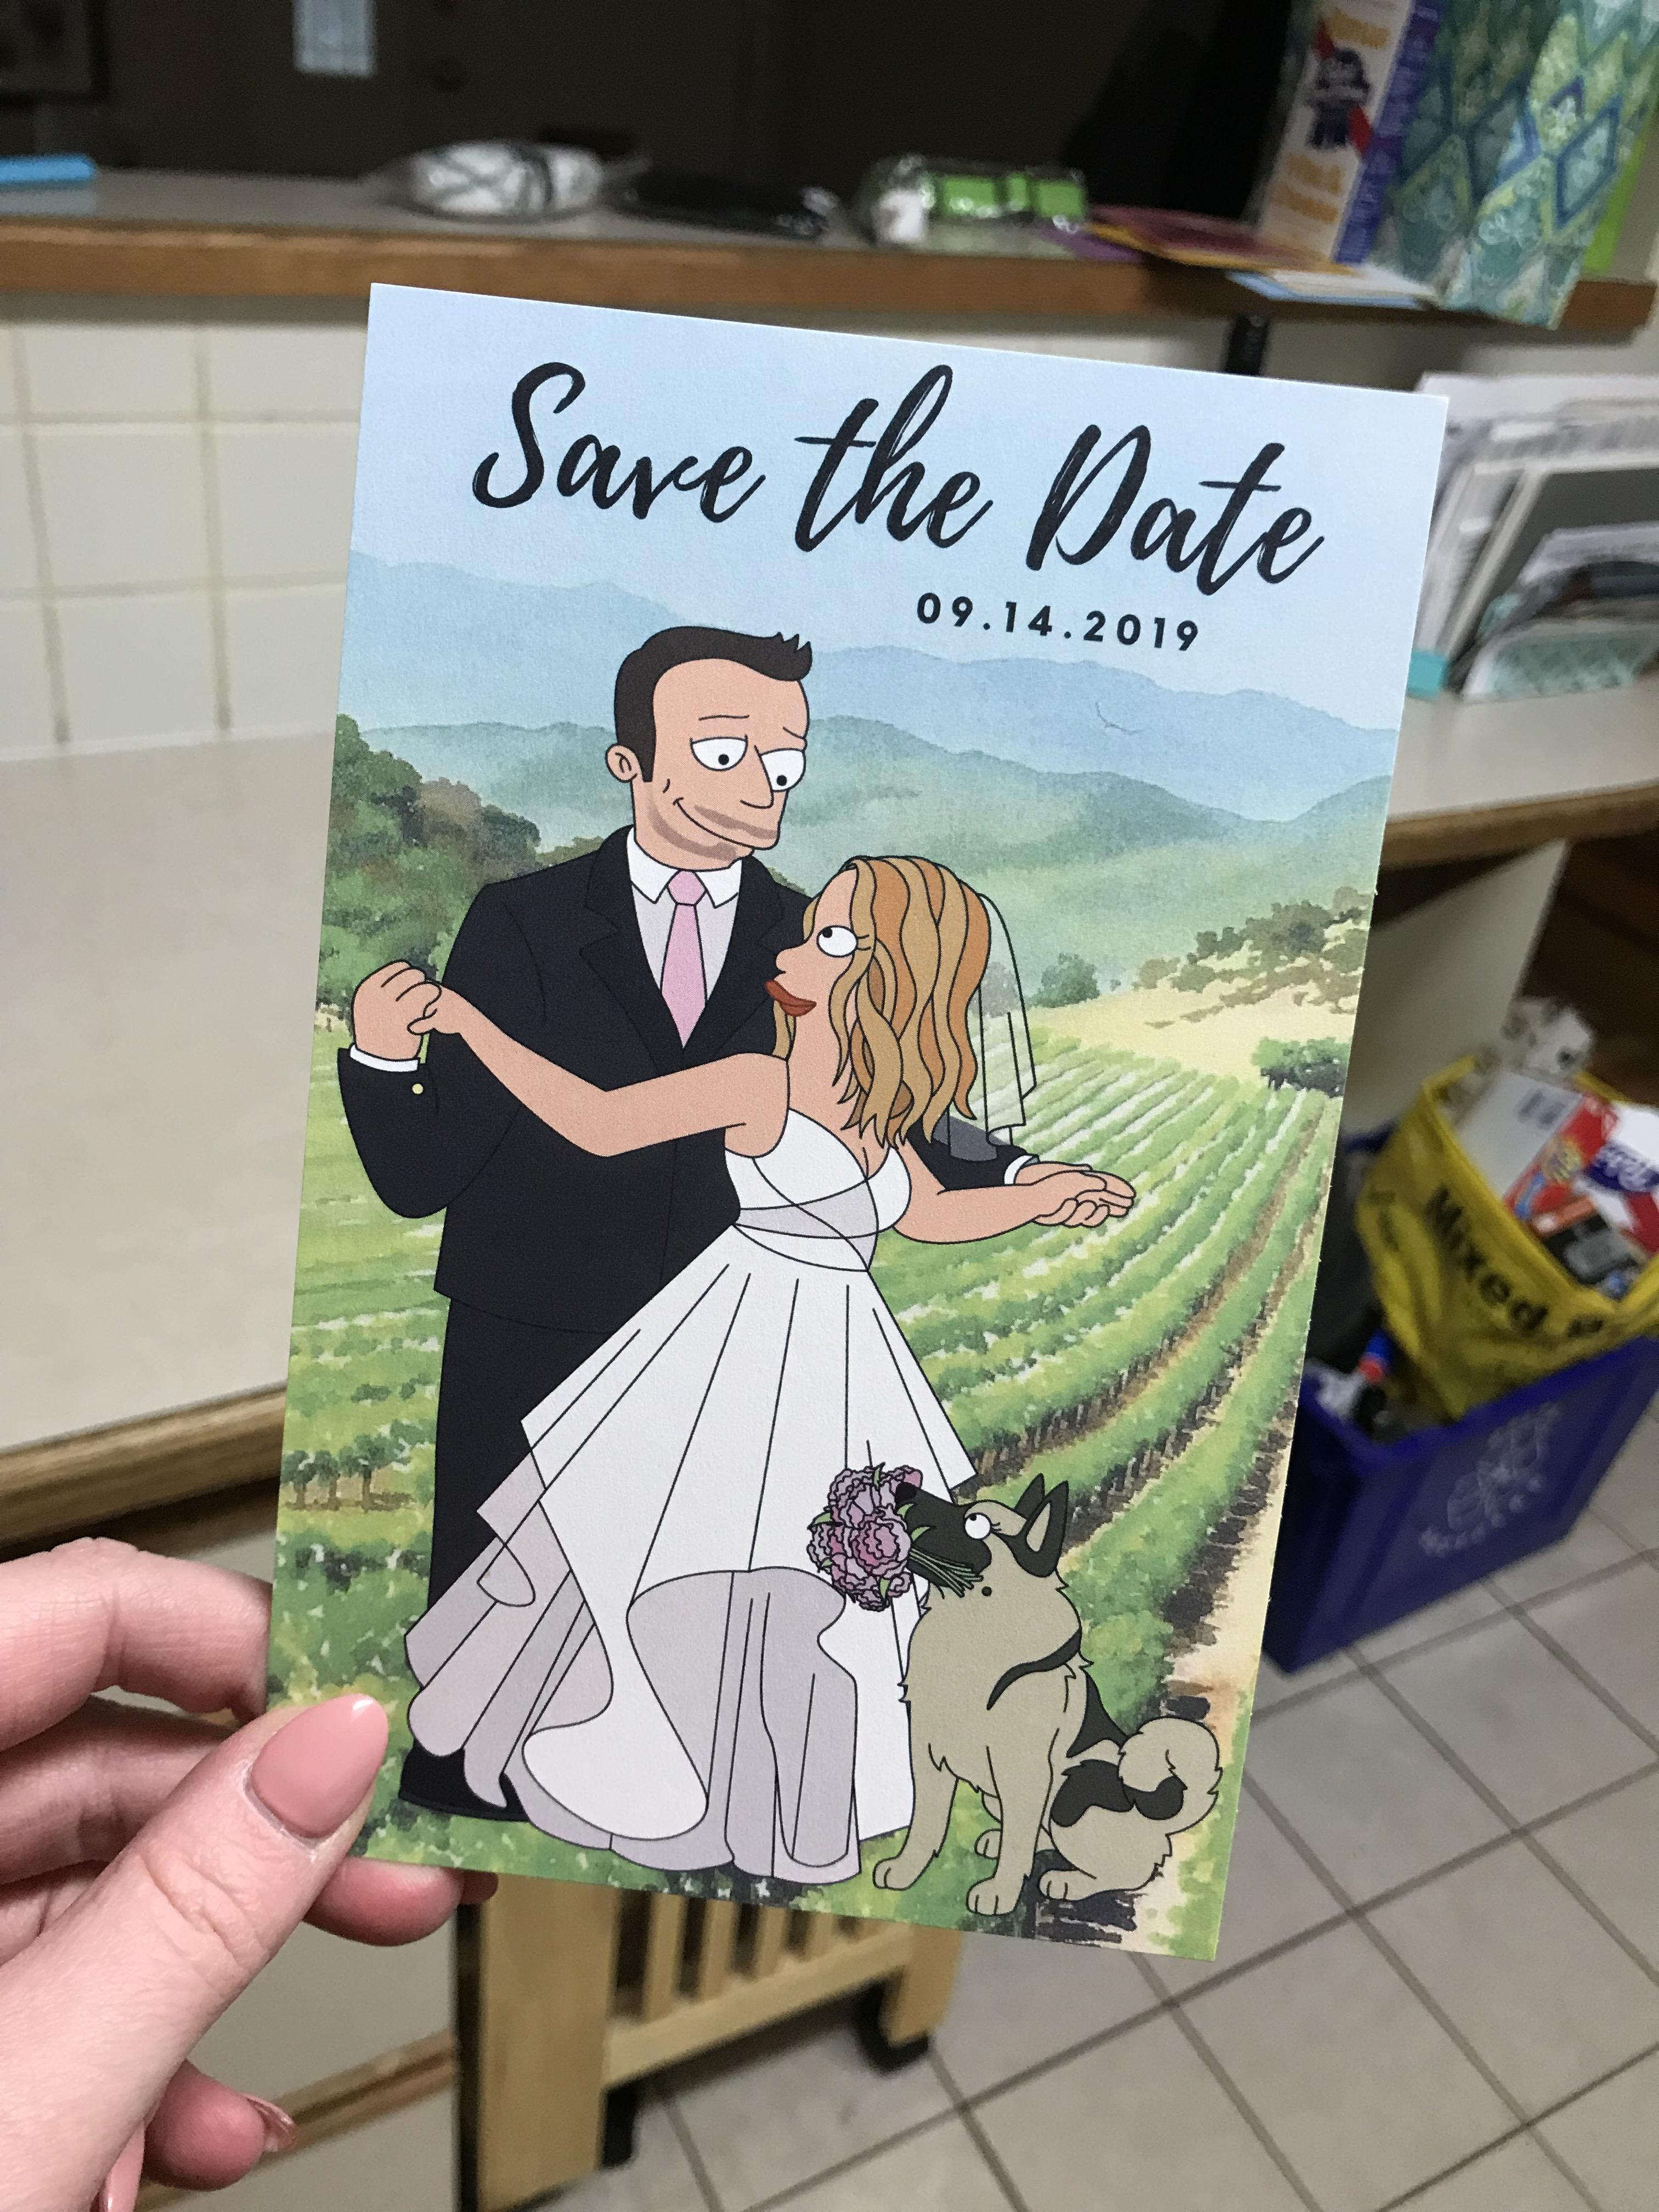 Fulgurant Our Vineyard Cartoondesigned By Graphics Done On Printing Through Vistaprintwith Our Futurama Save Arrived Our Vineyard Wedding Our Futurama Save Arrived photos Vistaprint Save The Date